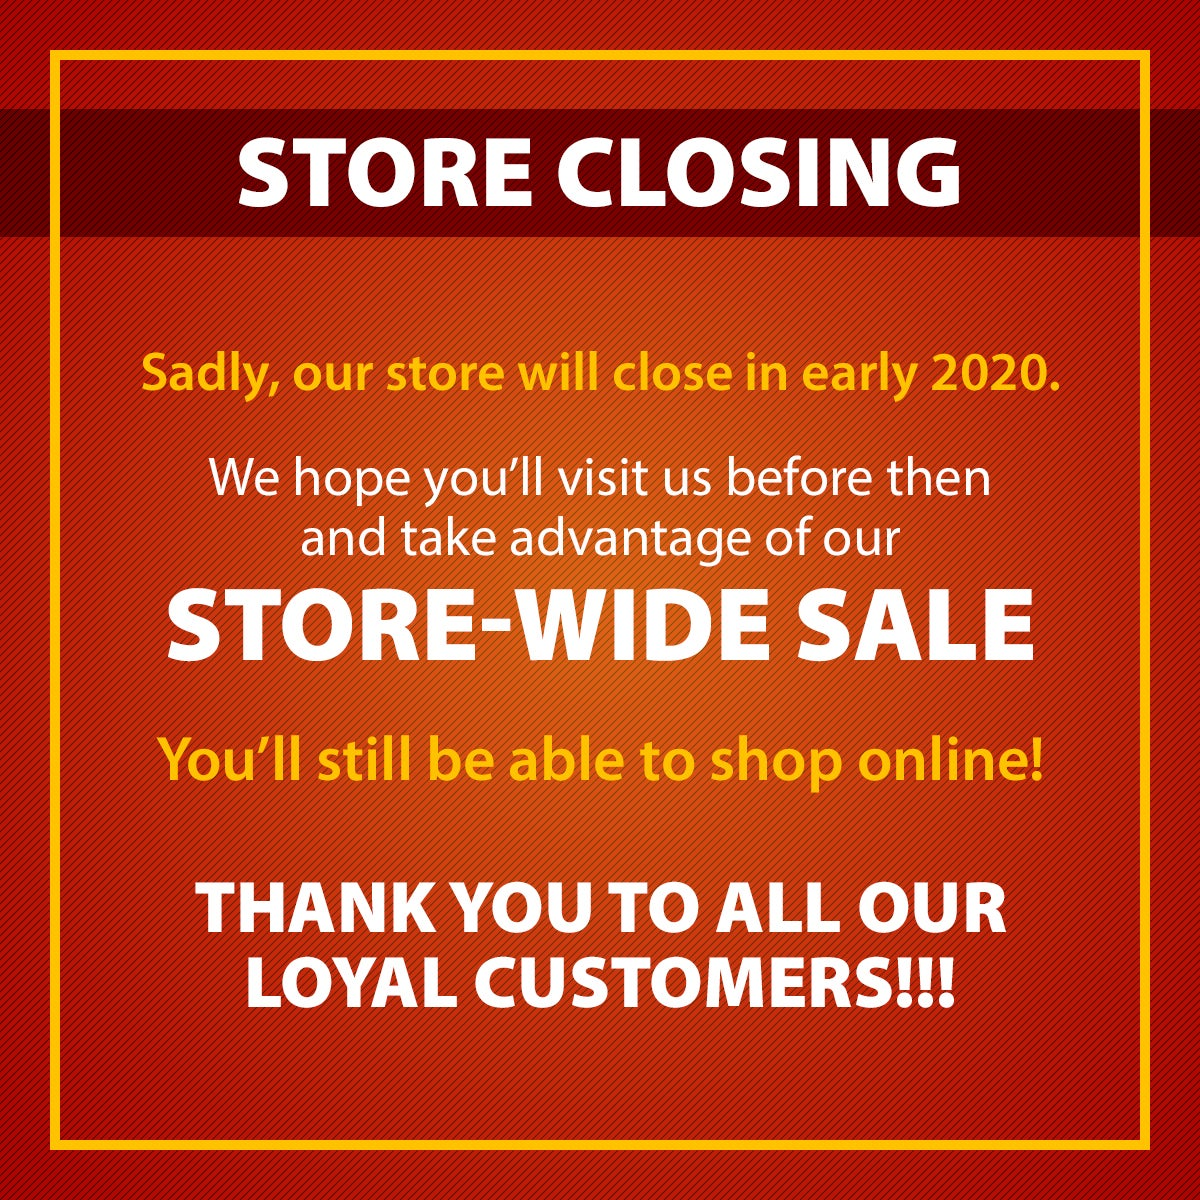 Plow & Hearth Virginia Beach Store closing early 2020. We hope you'll visit us before then and take advantage of our STORE-WIDE SALE.  You'll still be able to shop online!.  THANK YOU TO ALL OUR LOYAL CUSTOMERS!!!